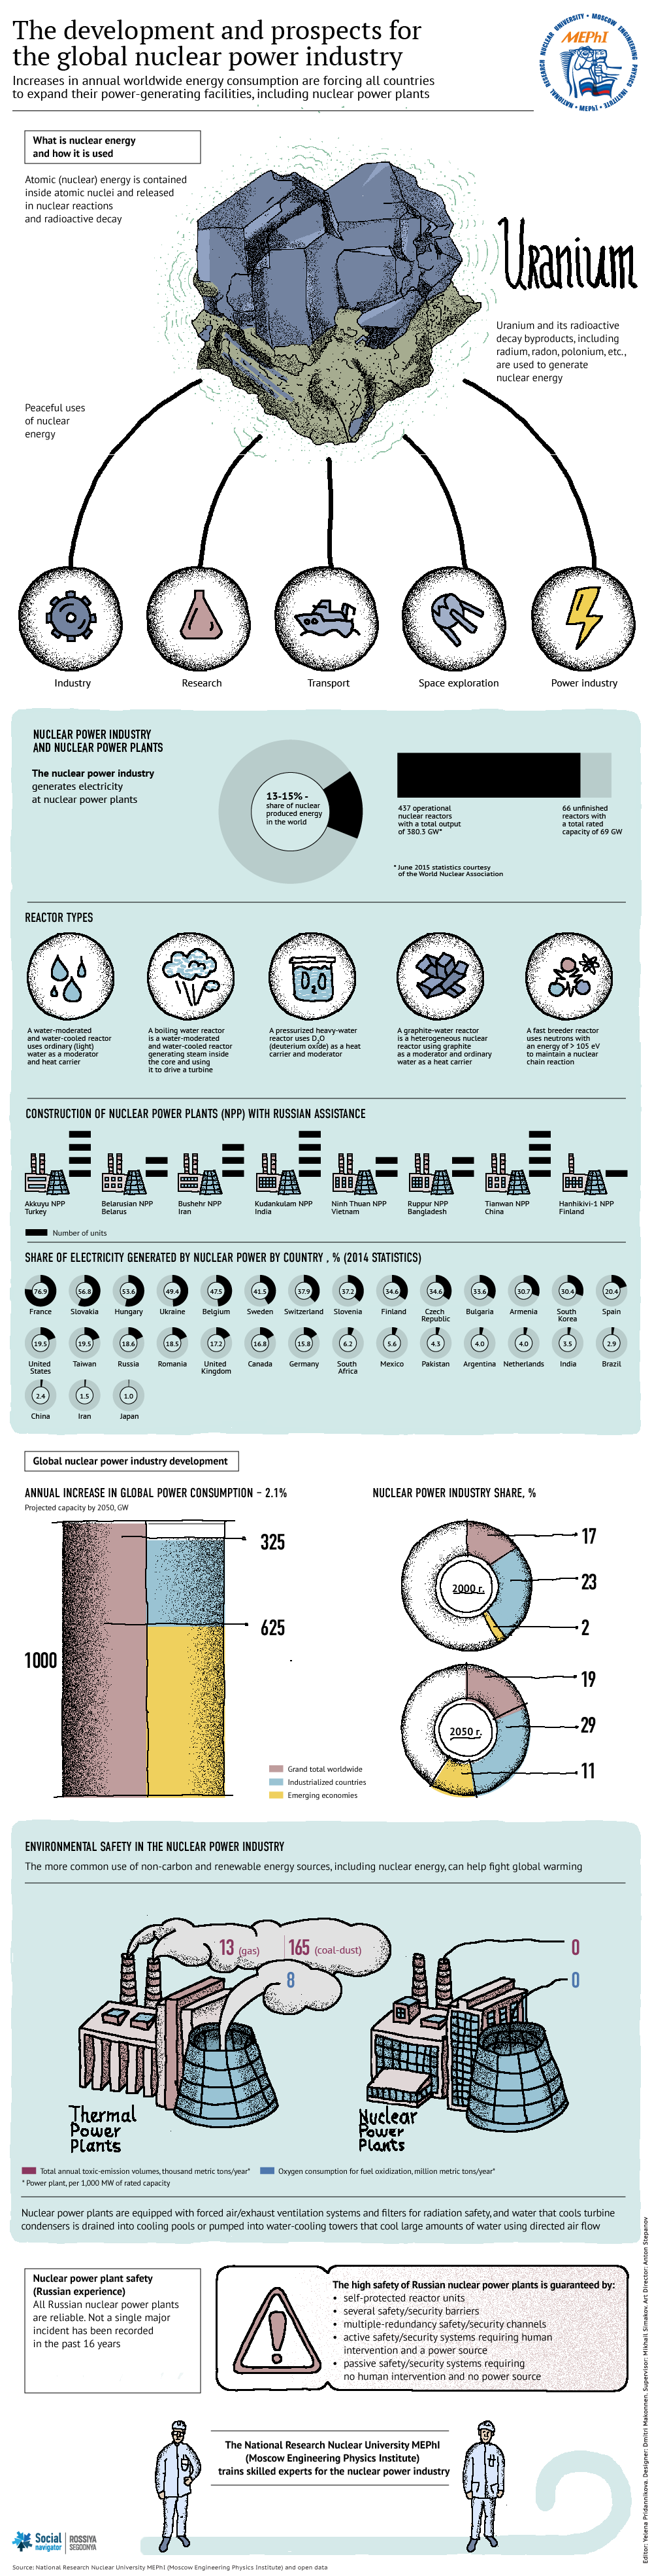 Global Nuclear Power: Developments and Prospects